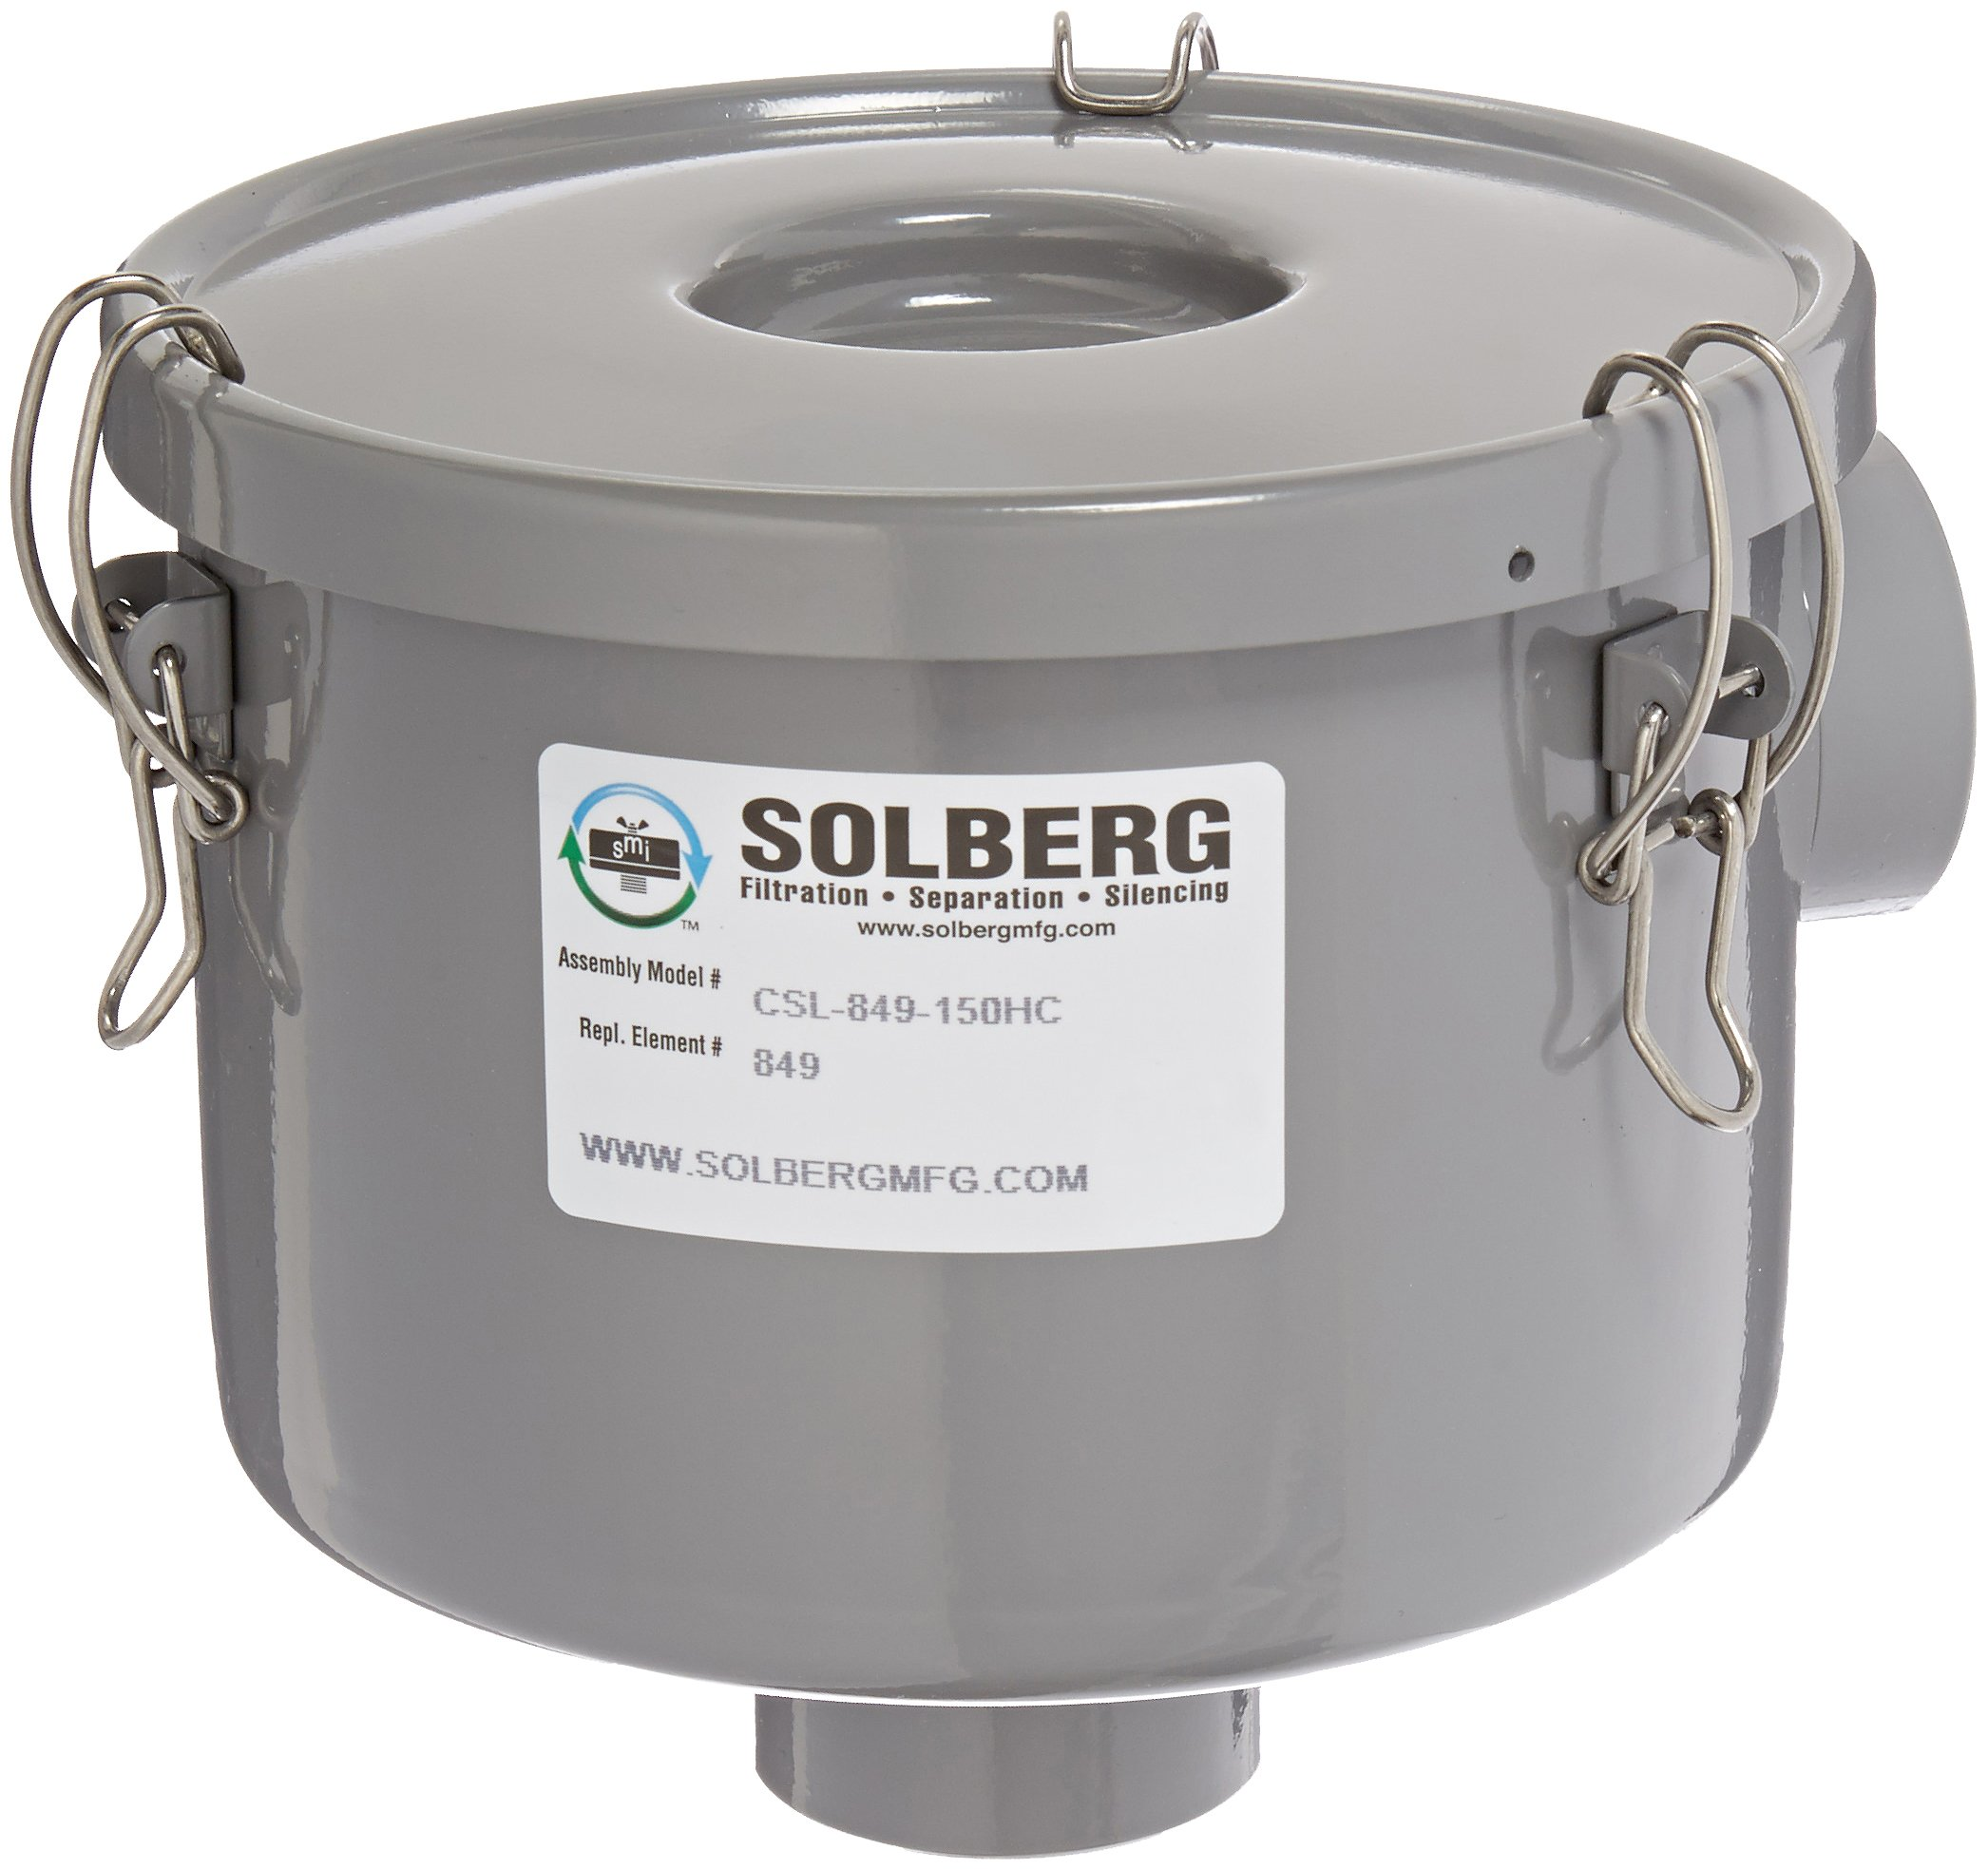 Solberg CSL-849-150HC Inlet Vacuum Pump Air Filter, 1-1/2'' FPT Inlet/Outlet, 6-3/4'' Height, 7-5/16'' Diameter, 80 SCFM, Made in the USA by Solberg